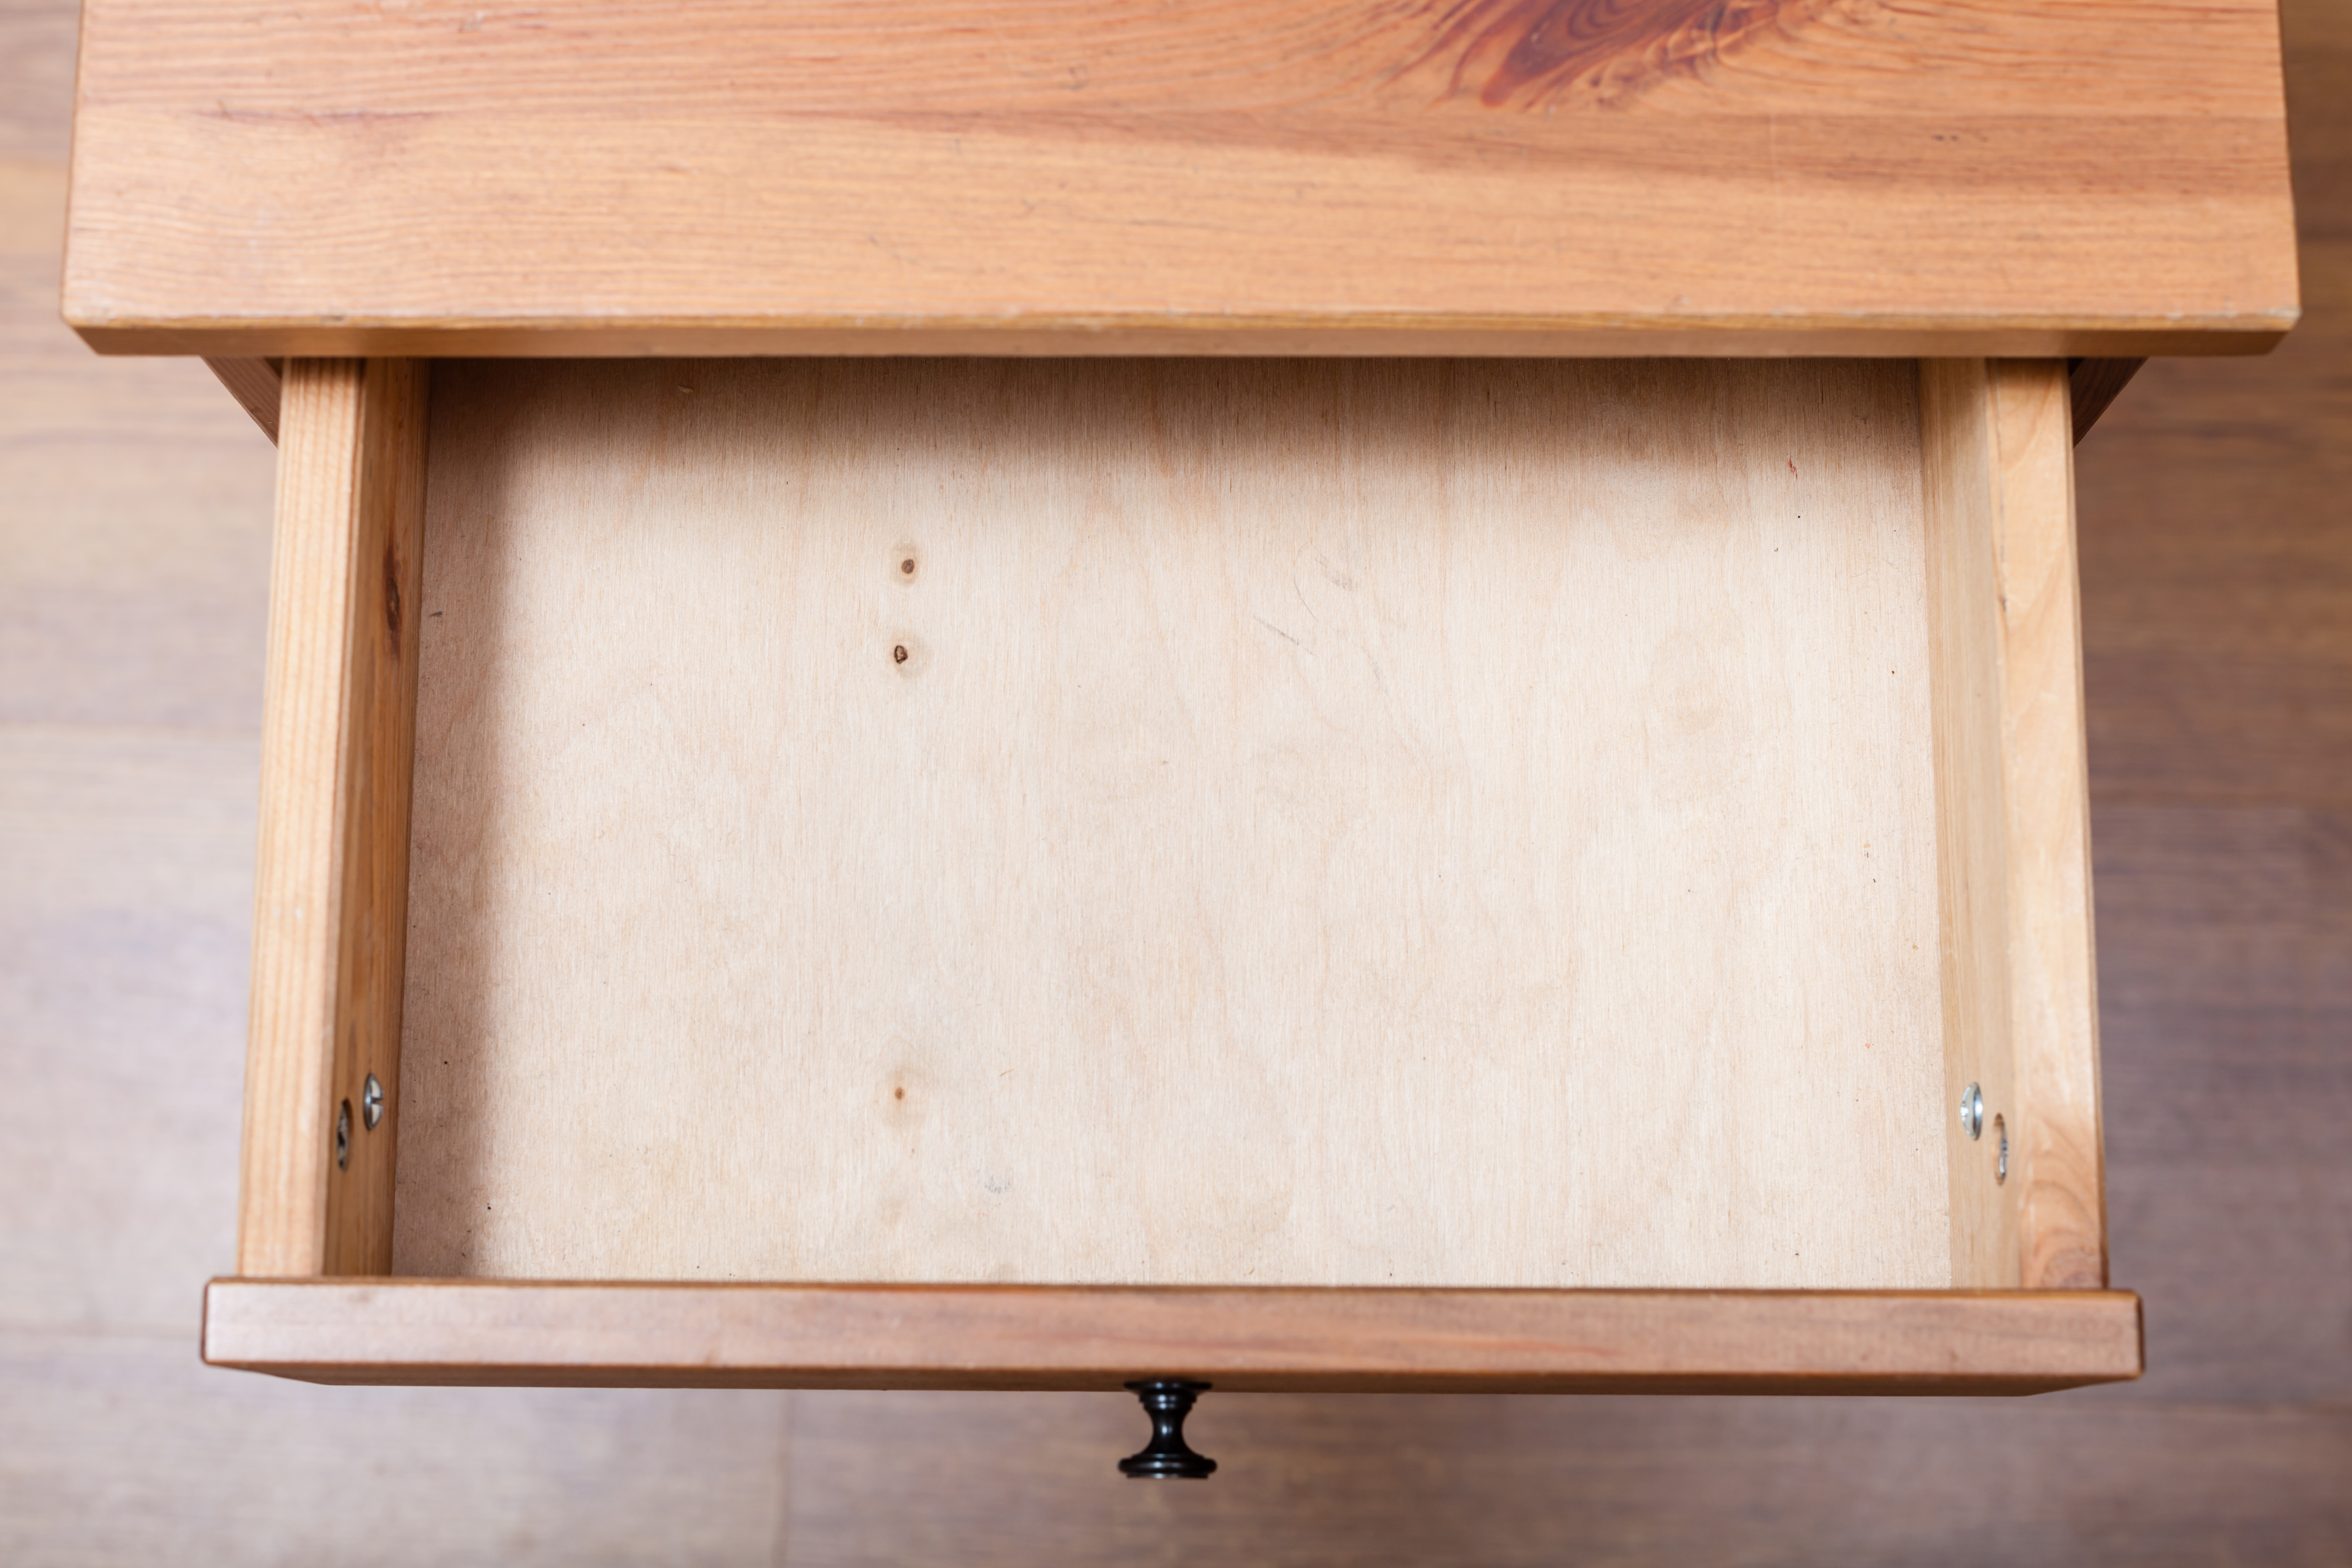 How To Determine Drawer Slide Sizes Home Guides Sf Gate